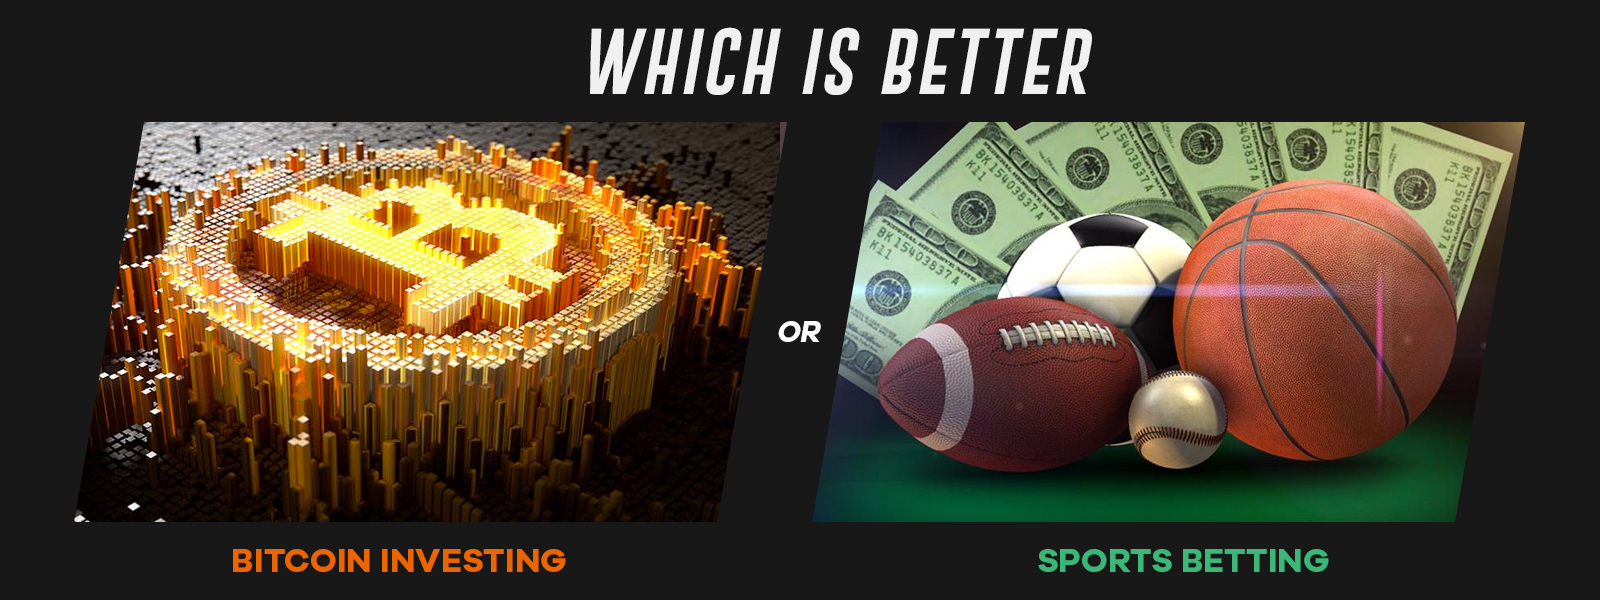 Bitcoin Investing vs Sports Betting